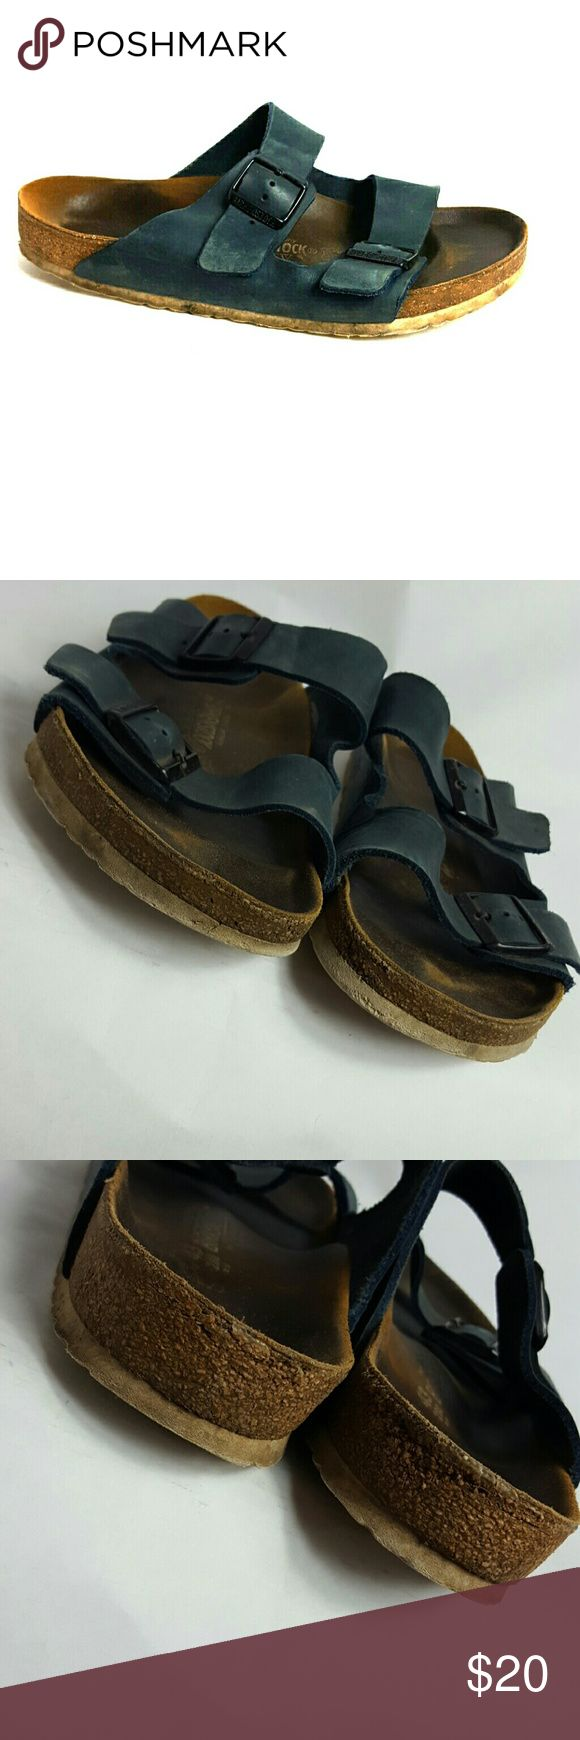 Birkenstock flip flops size European 43/ us 9.5 Condition 8/10, they have been worn, scuffs on both shoes from normal wear, let me know if you would like me to add more pictures or you want to ask something, Birkenstock Shoes Sandals & Flip-Flops